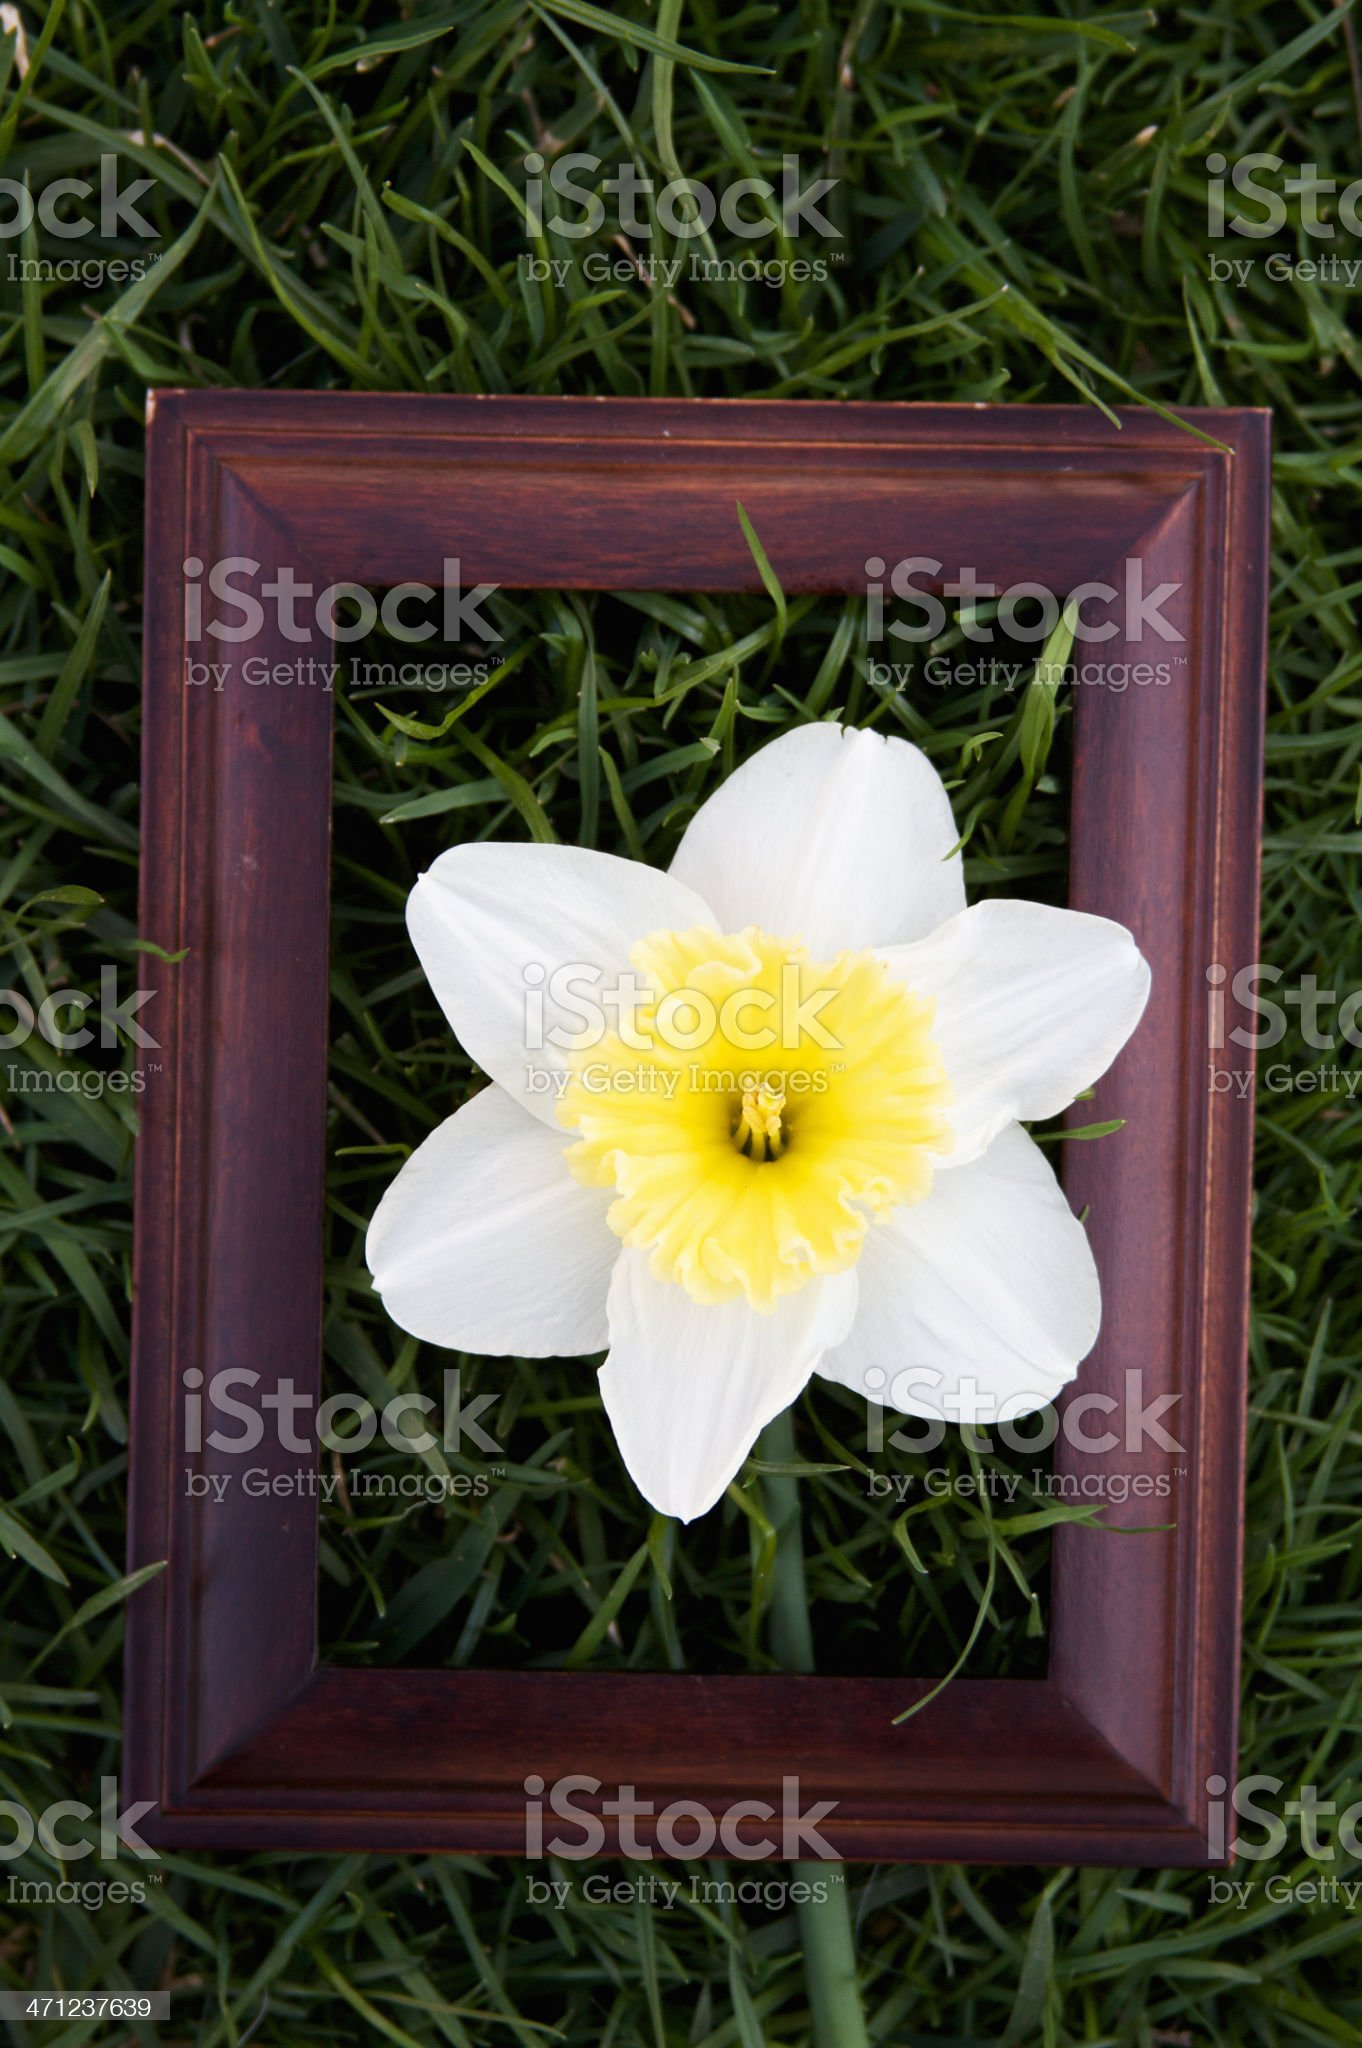 Picture Frame in Grass with Flower royalty-free stock photo